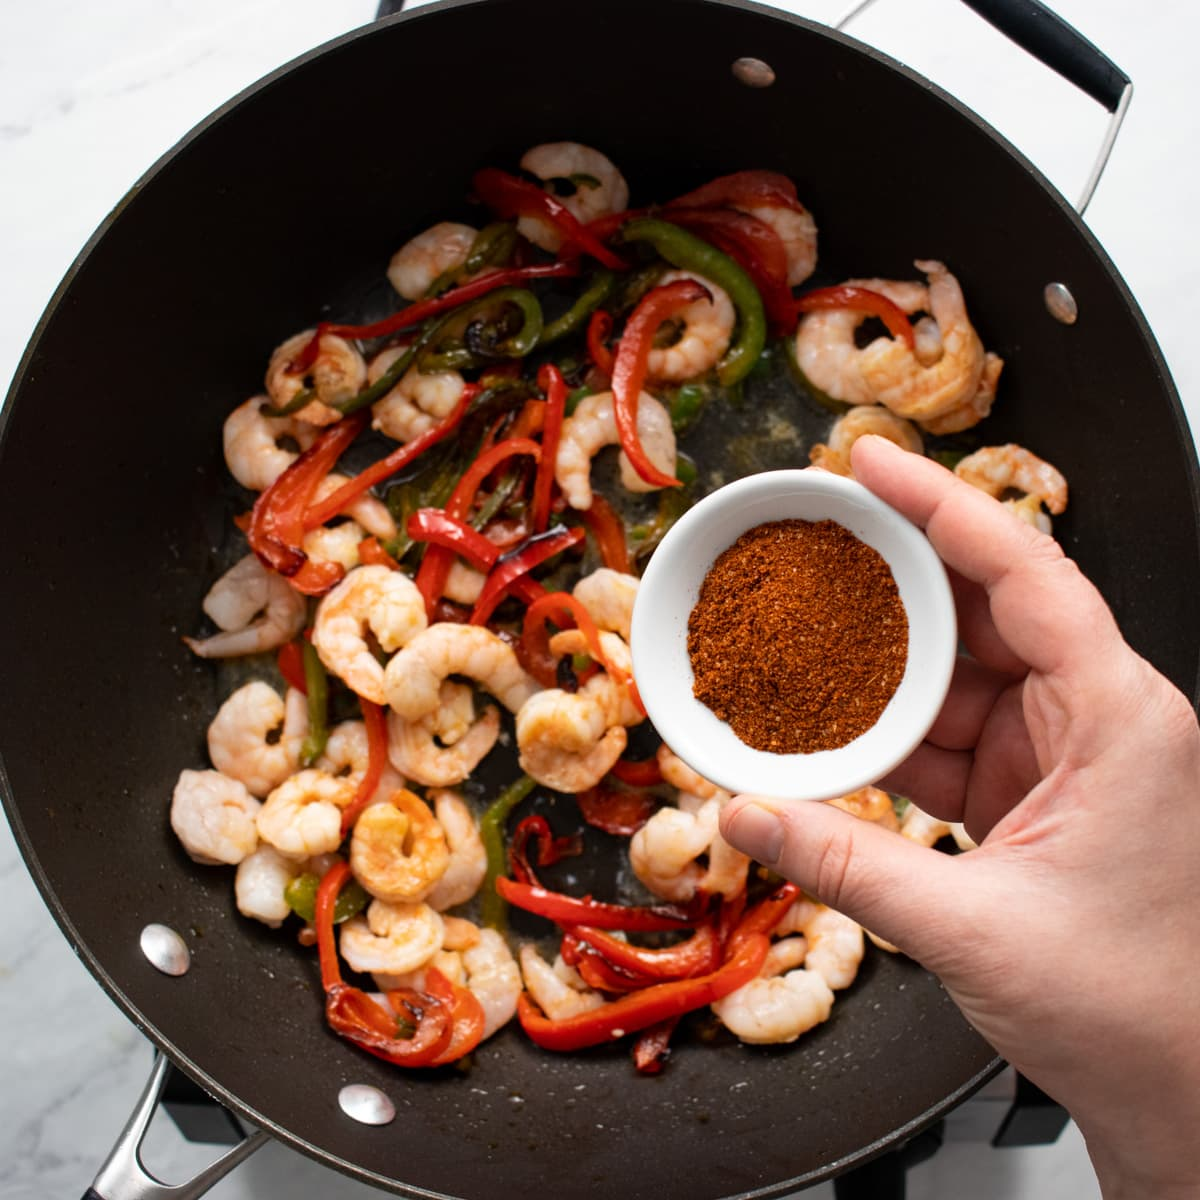 A hand holding a small white bowl of low FODMAP taco seasoning over a skillet filled with sautéed shrimp and bell pepper slices.